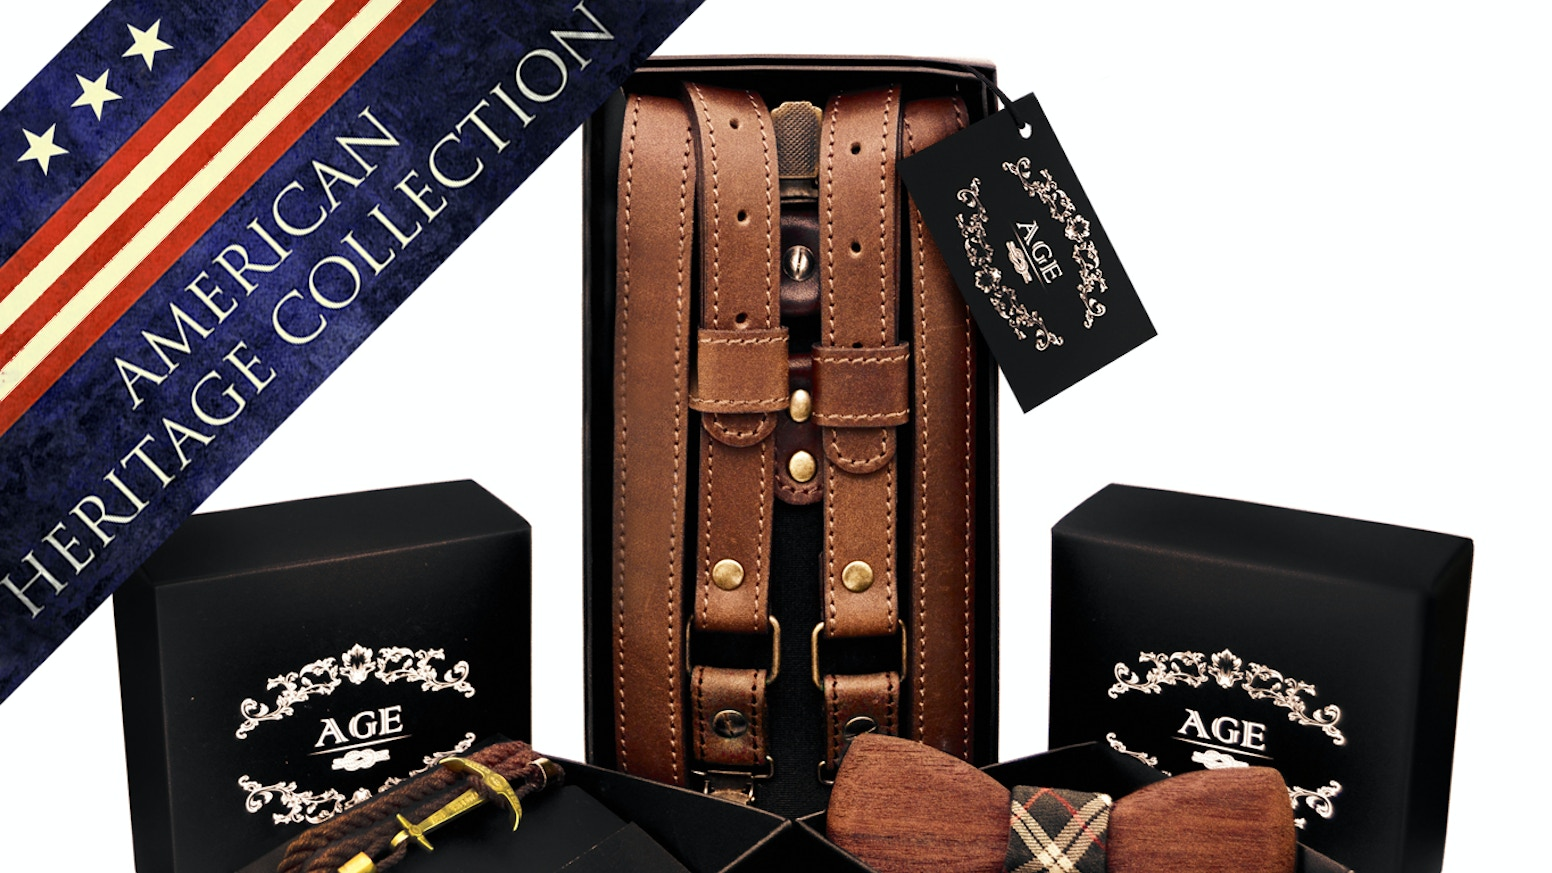 The highest quality accessories made to be used for a lifetime. Genuine leather suspenders, wooden bow ties, premium bracelets.